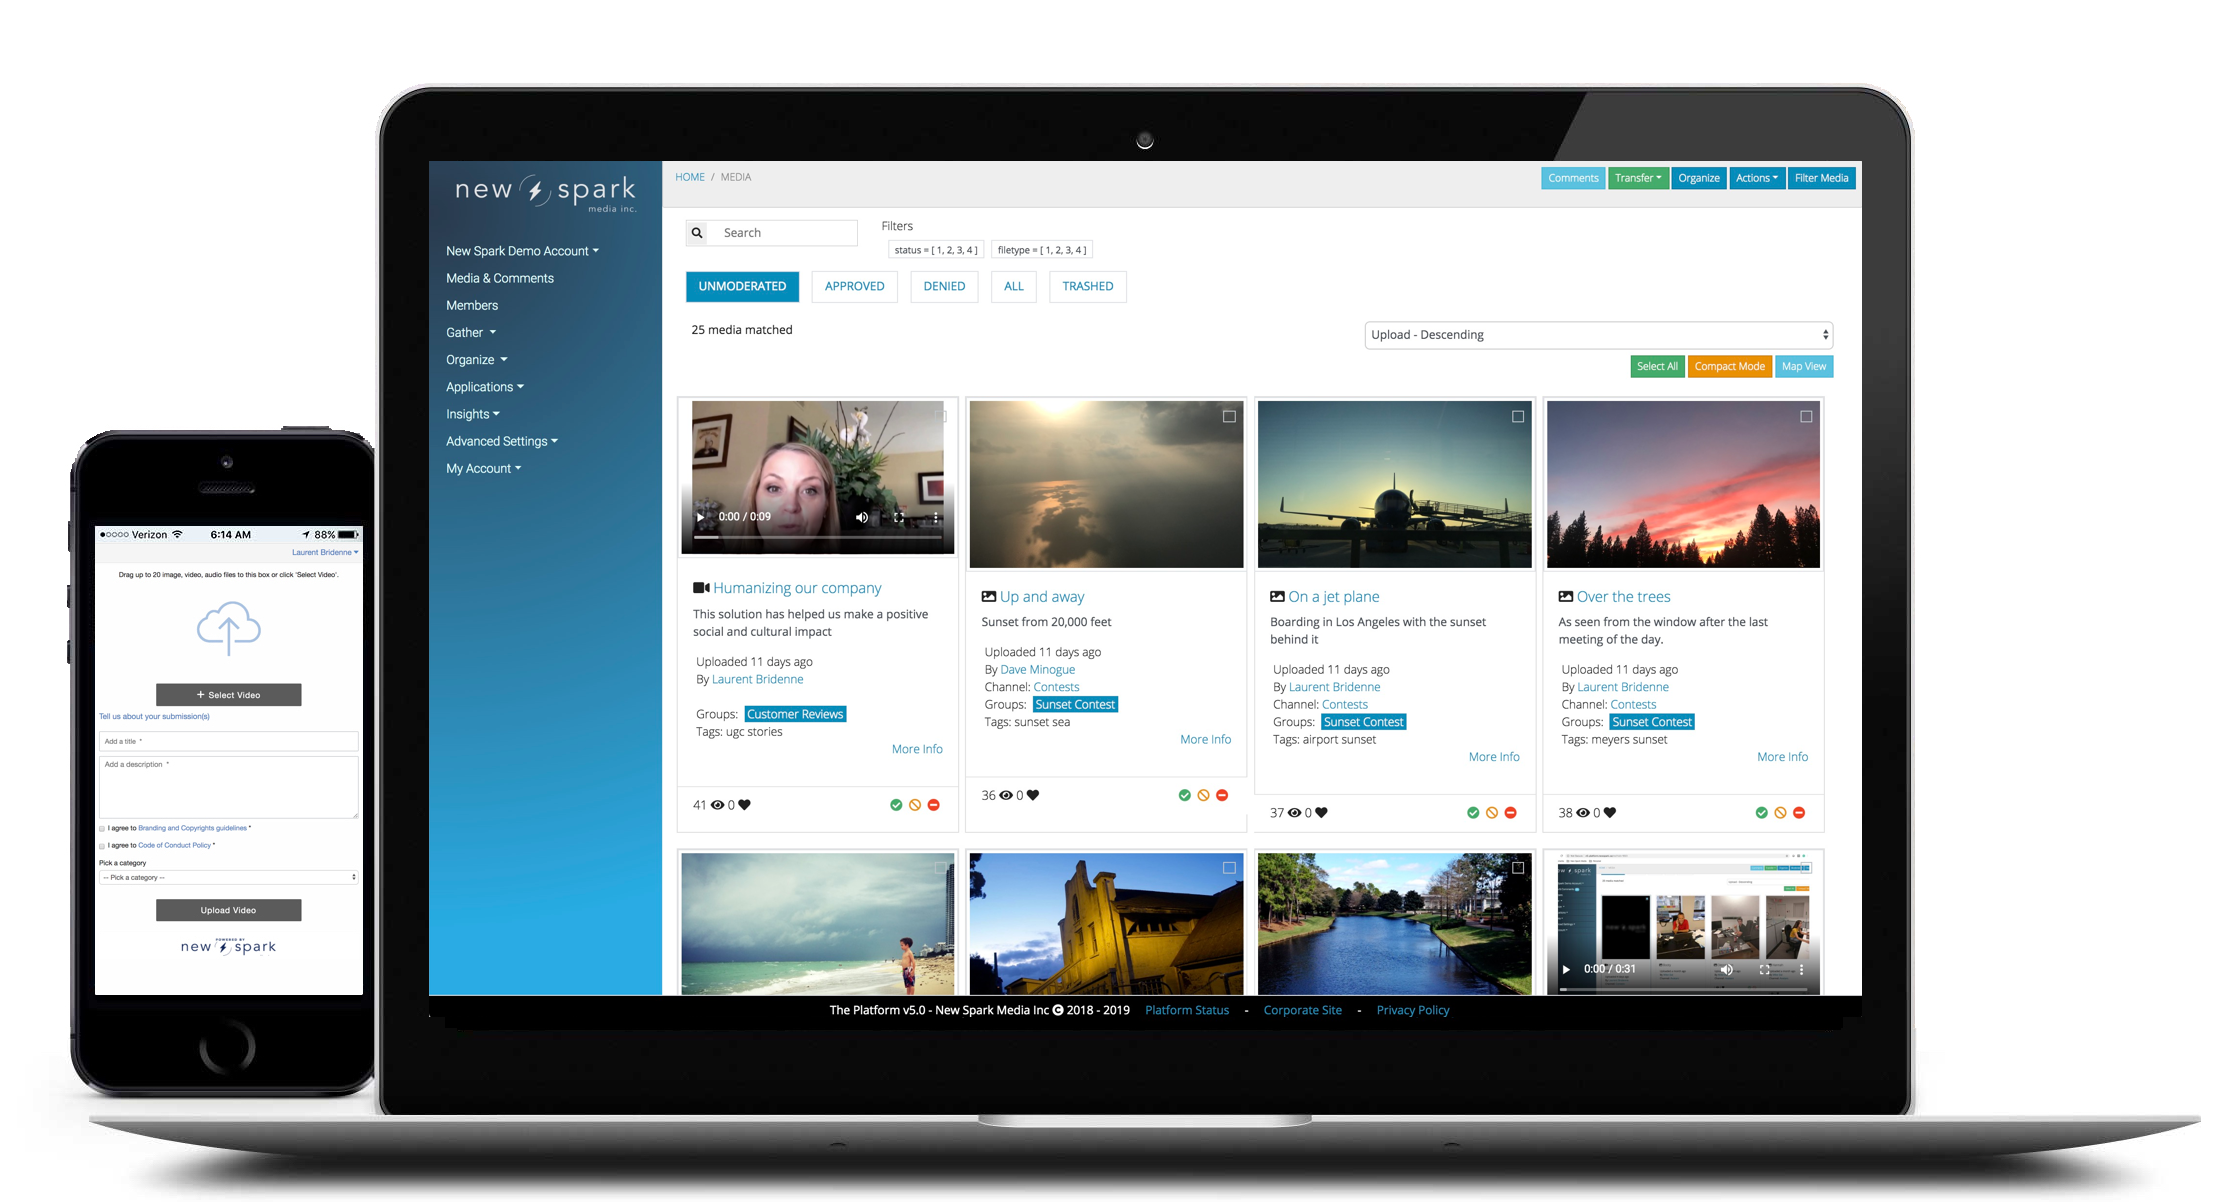 New Spark Media Platform UI screens